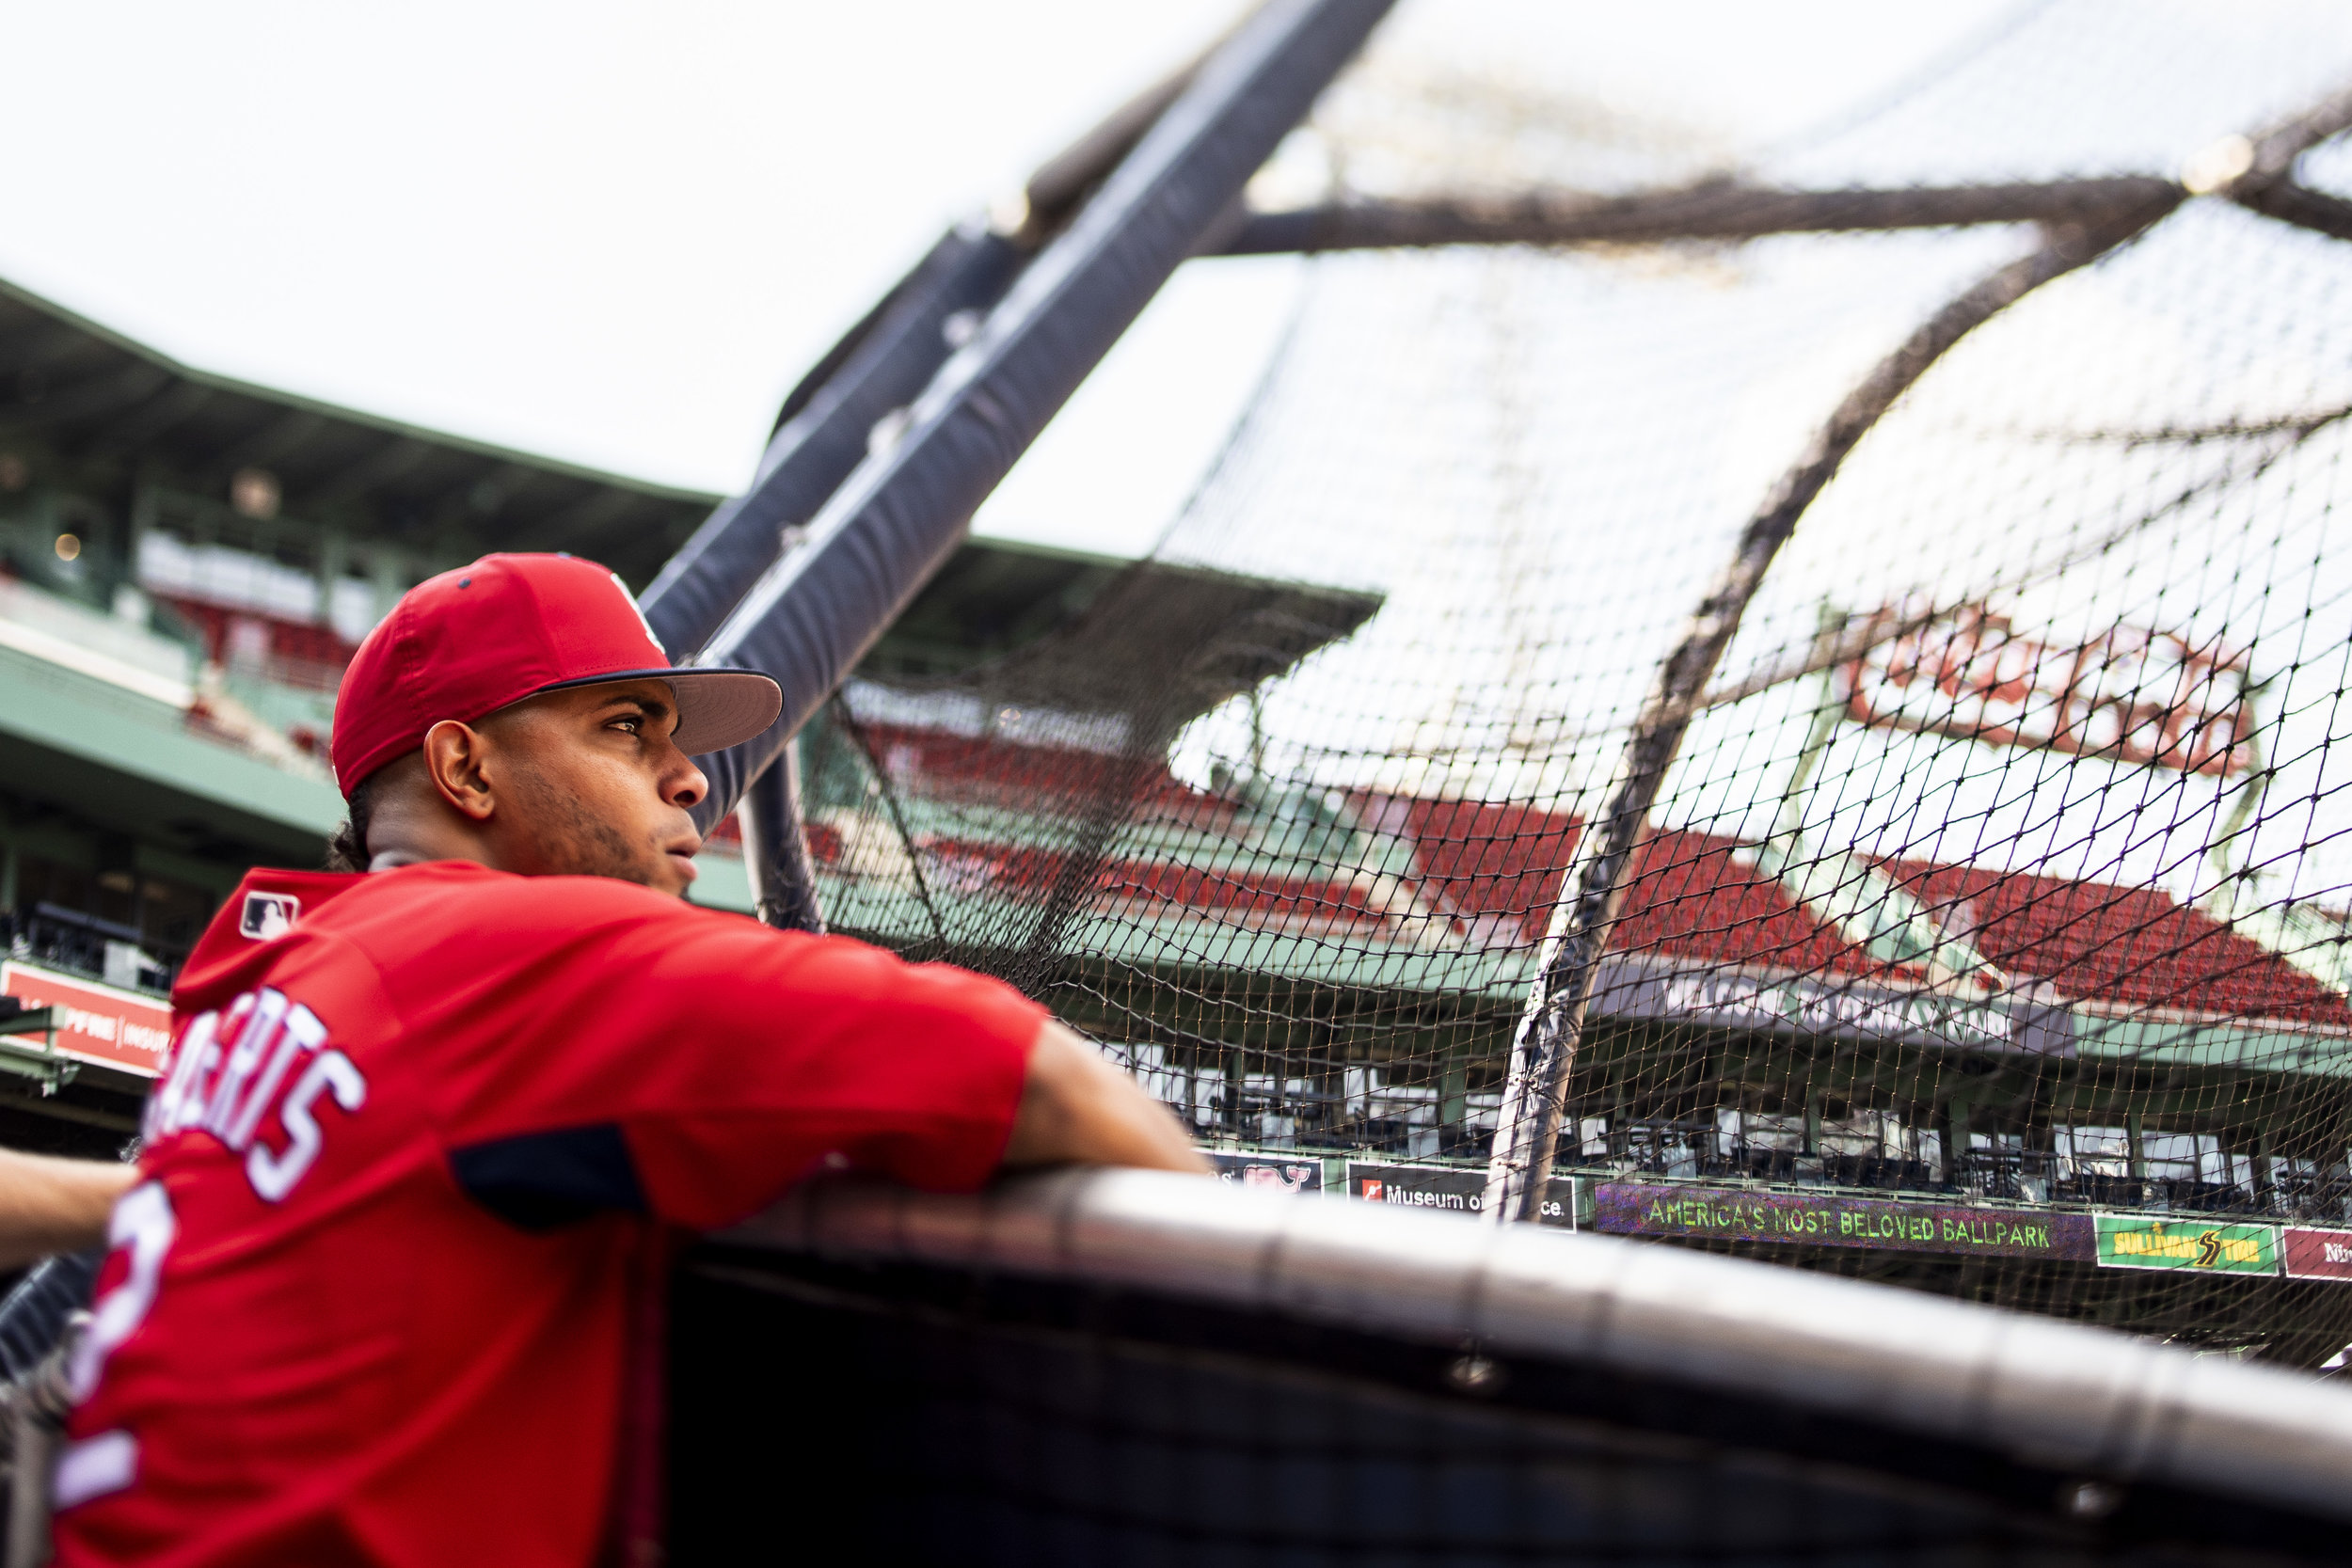 July 26, 2018, Boston, MA: Boston Red Sox shortstop Xander Bogaerts watches batting practice from the cage before the Boston Red Sox face the Minnesota Twins at Fenway Park in Boston, Massachusetts on Friday, July 27, 2018. (Photo by Matthew Thomas/Boston Red Sox)